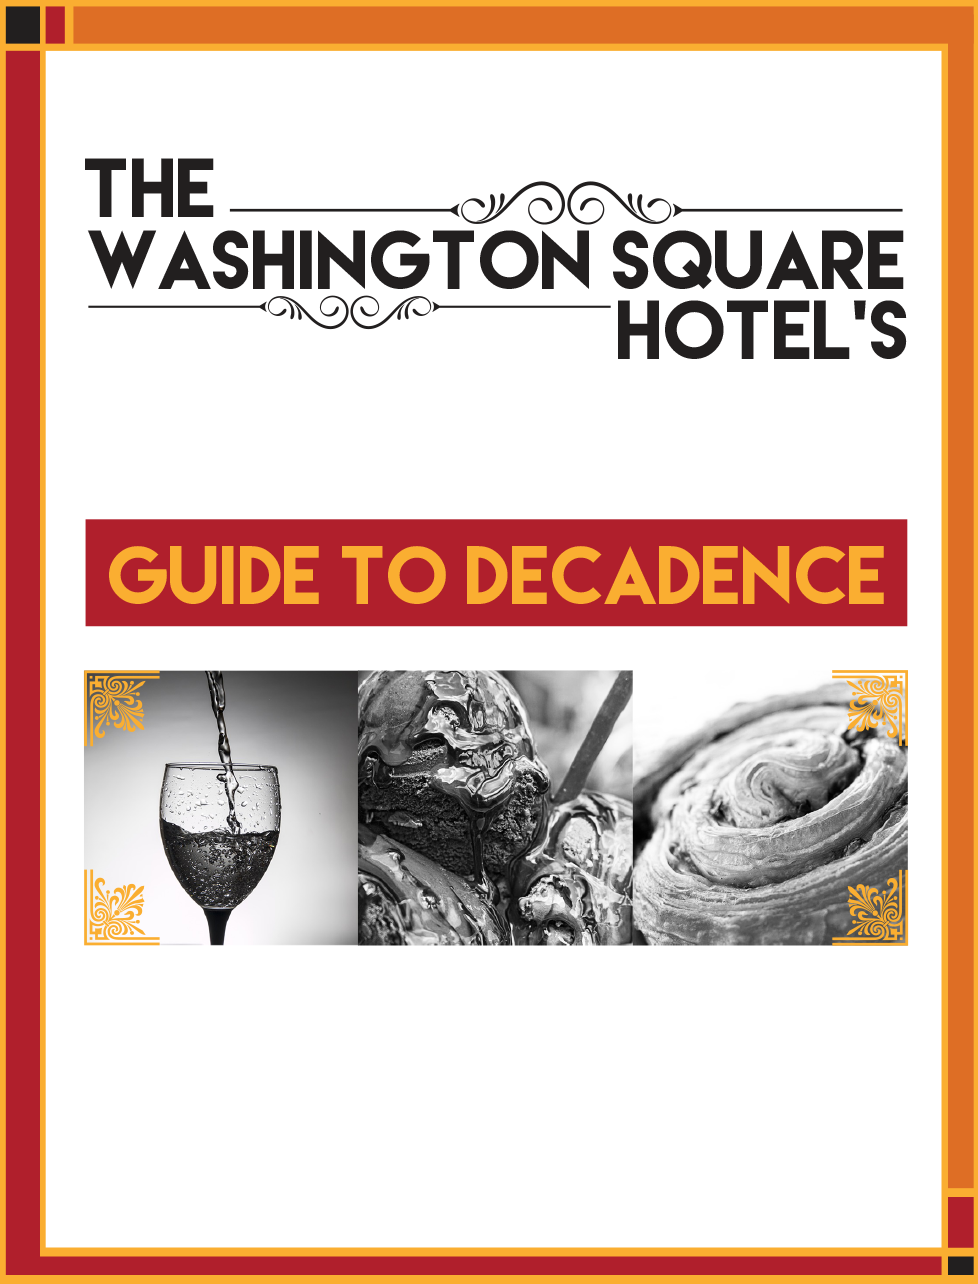 GuidetoDecadence_CoverPage.png